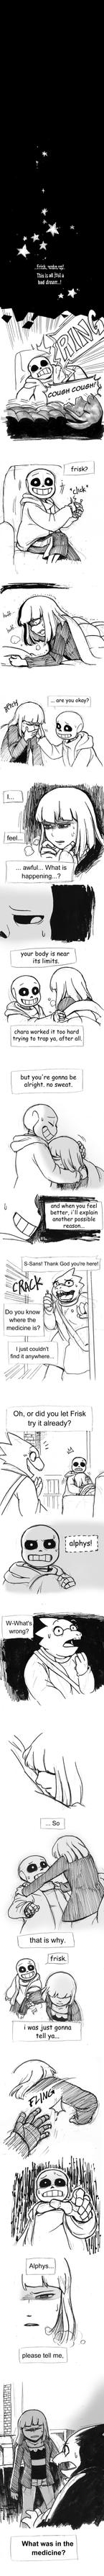 Stand-in Chapter three 47 by Triangle-cat